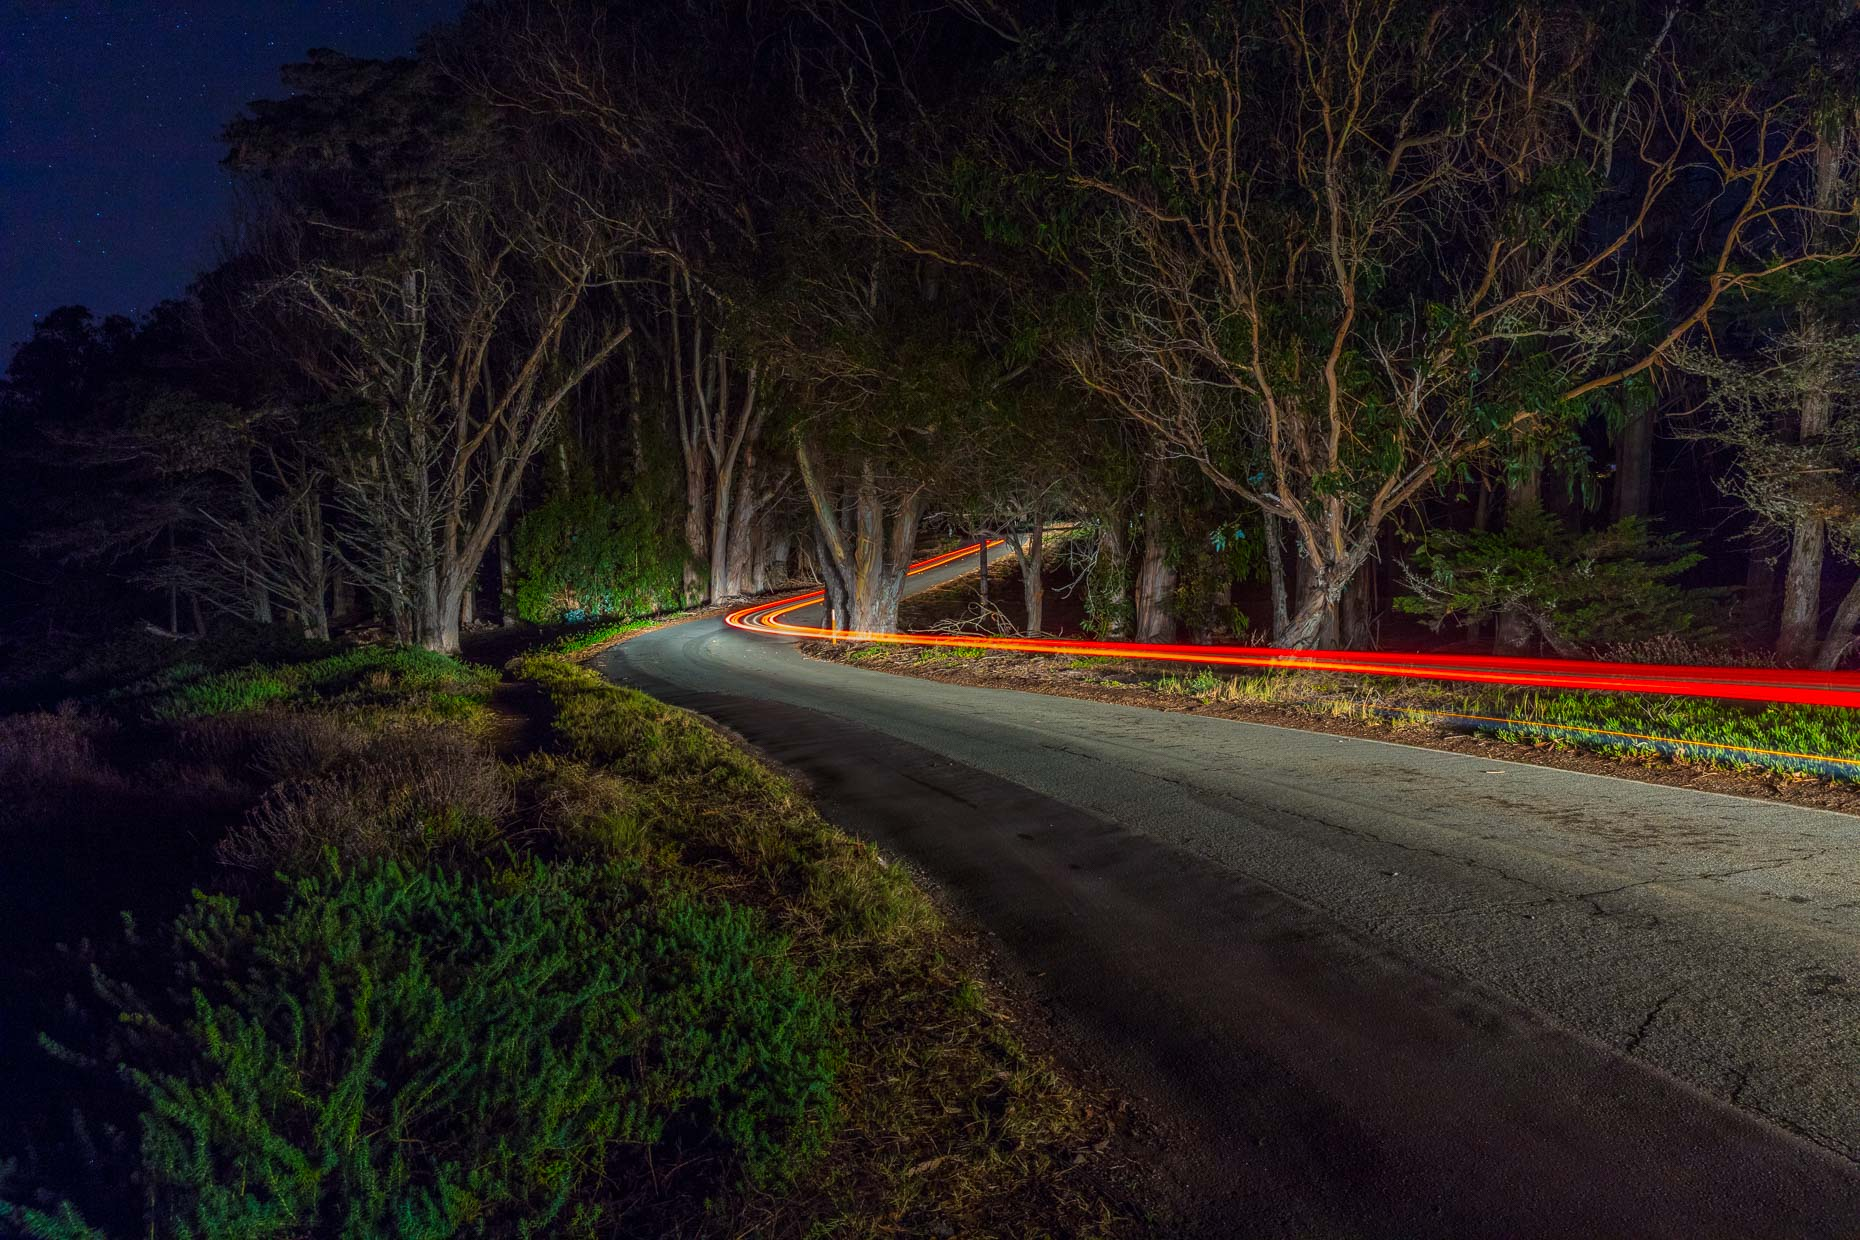 Streak of light from car driving on tree lined road at night in Morro Bay, California